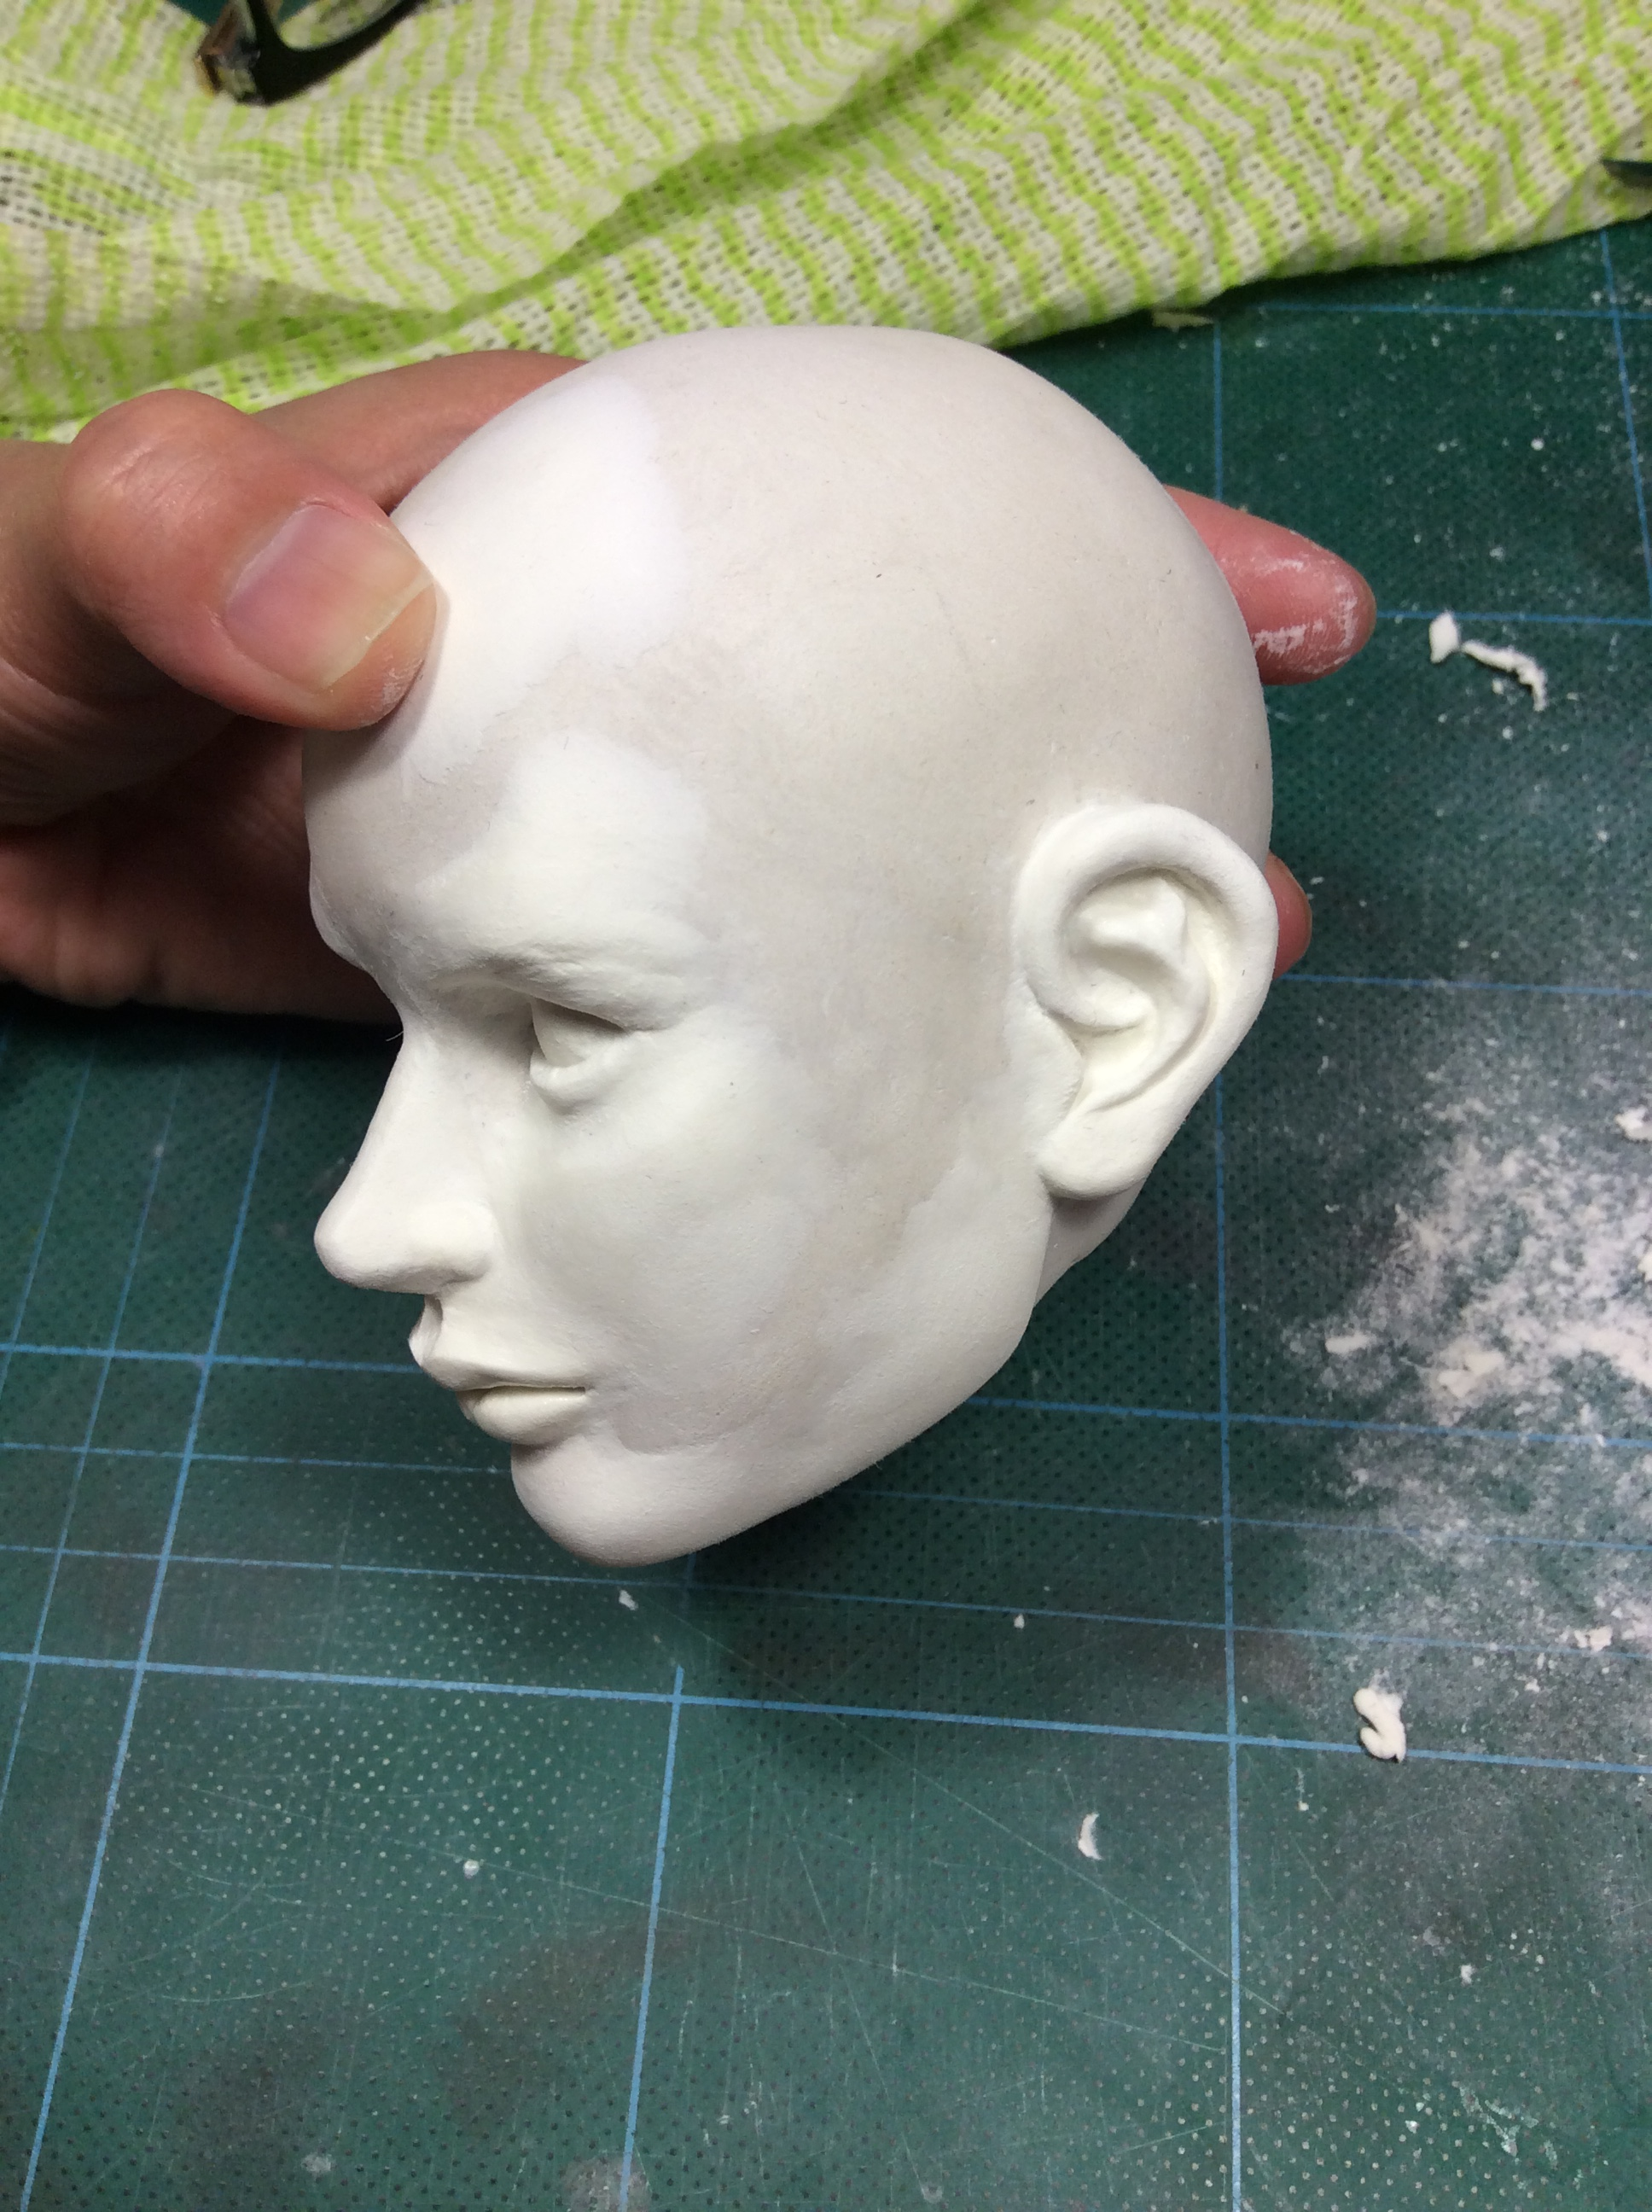 jemse---my-first-doll-head-making-progress-diary-part-3_32293334711_o